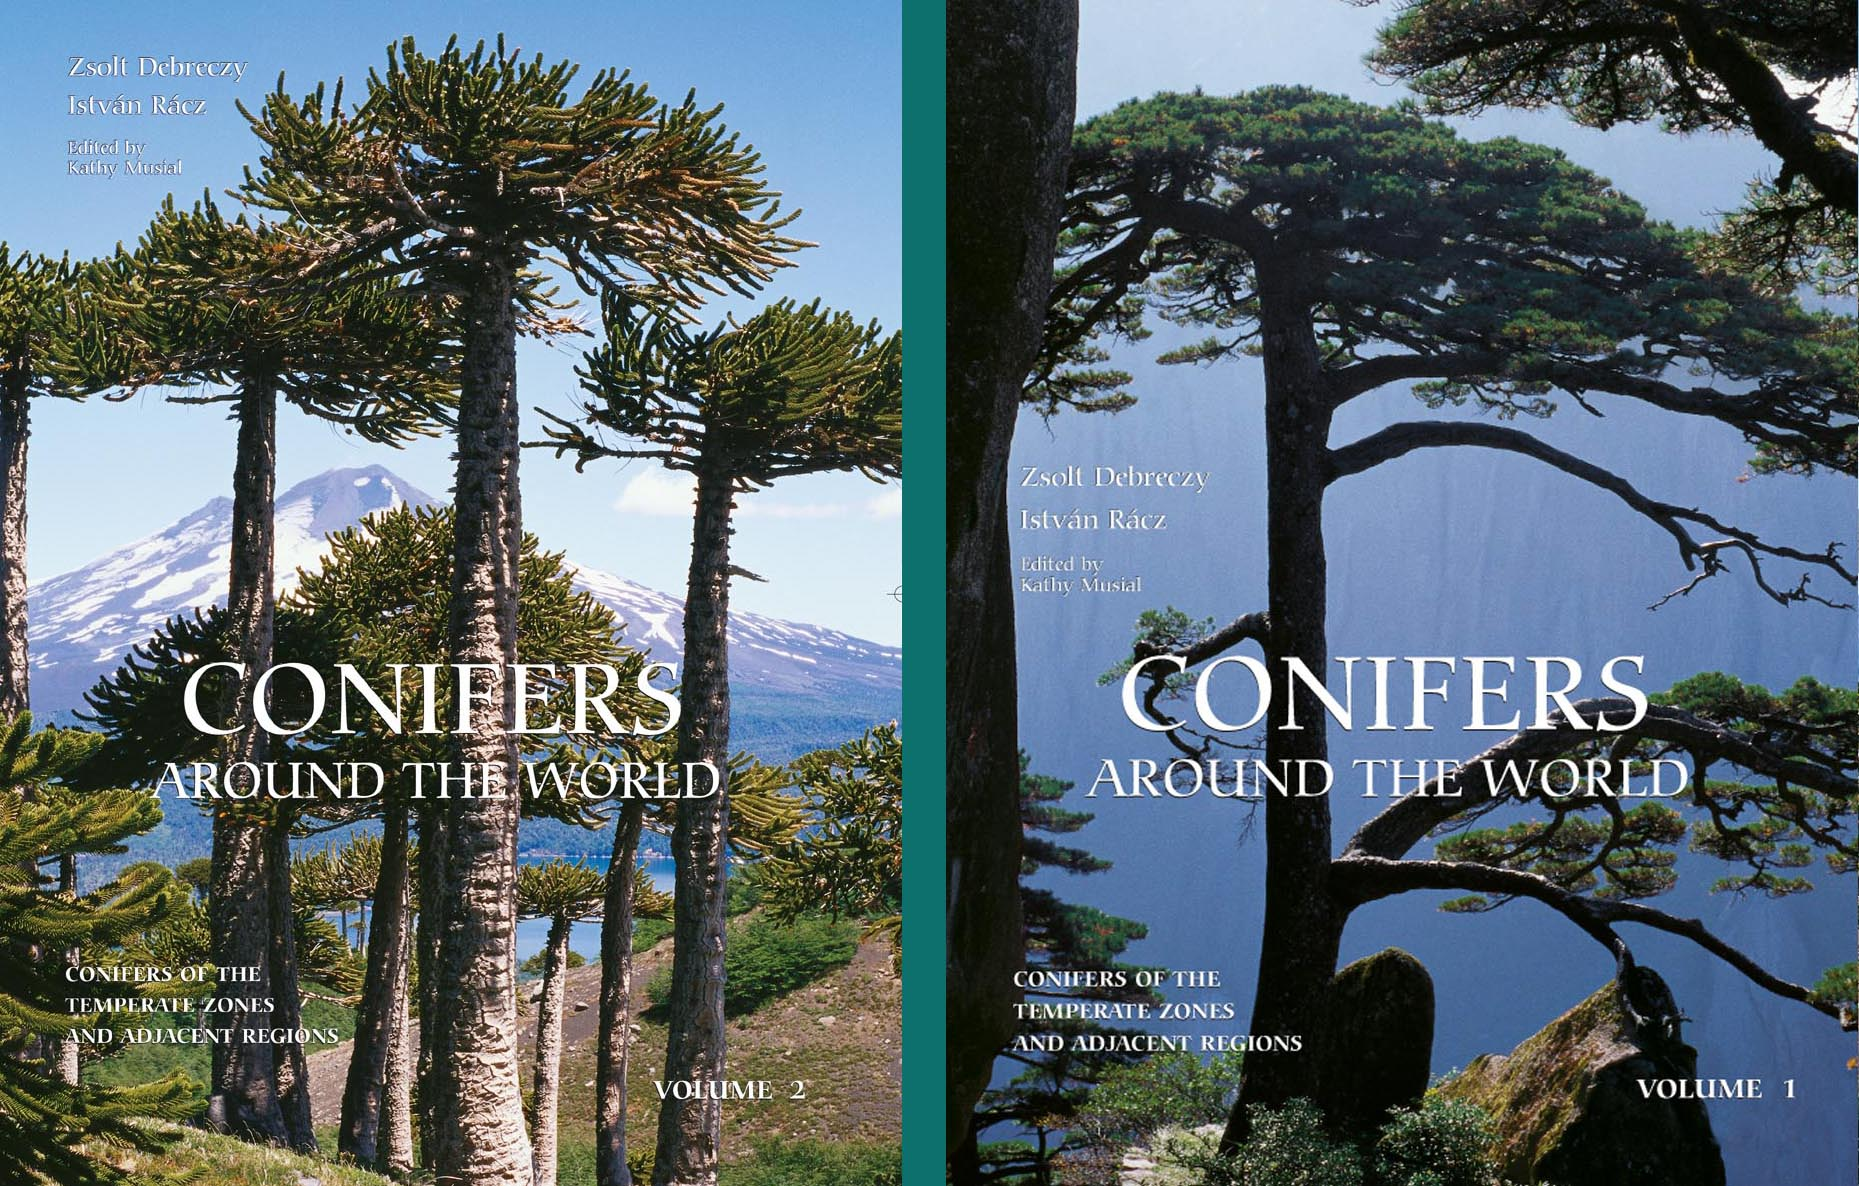 Conifers Around the World